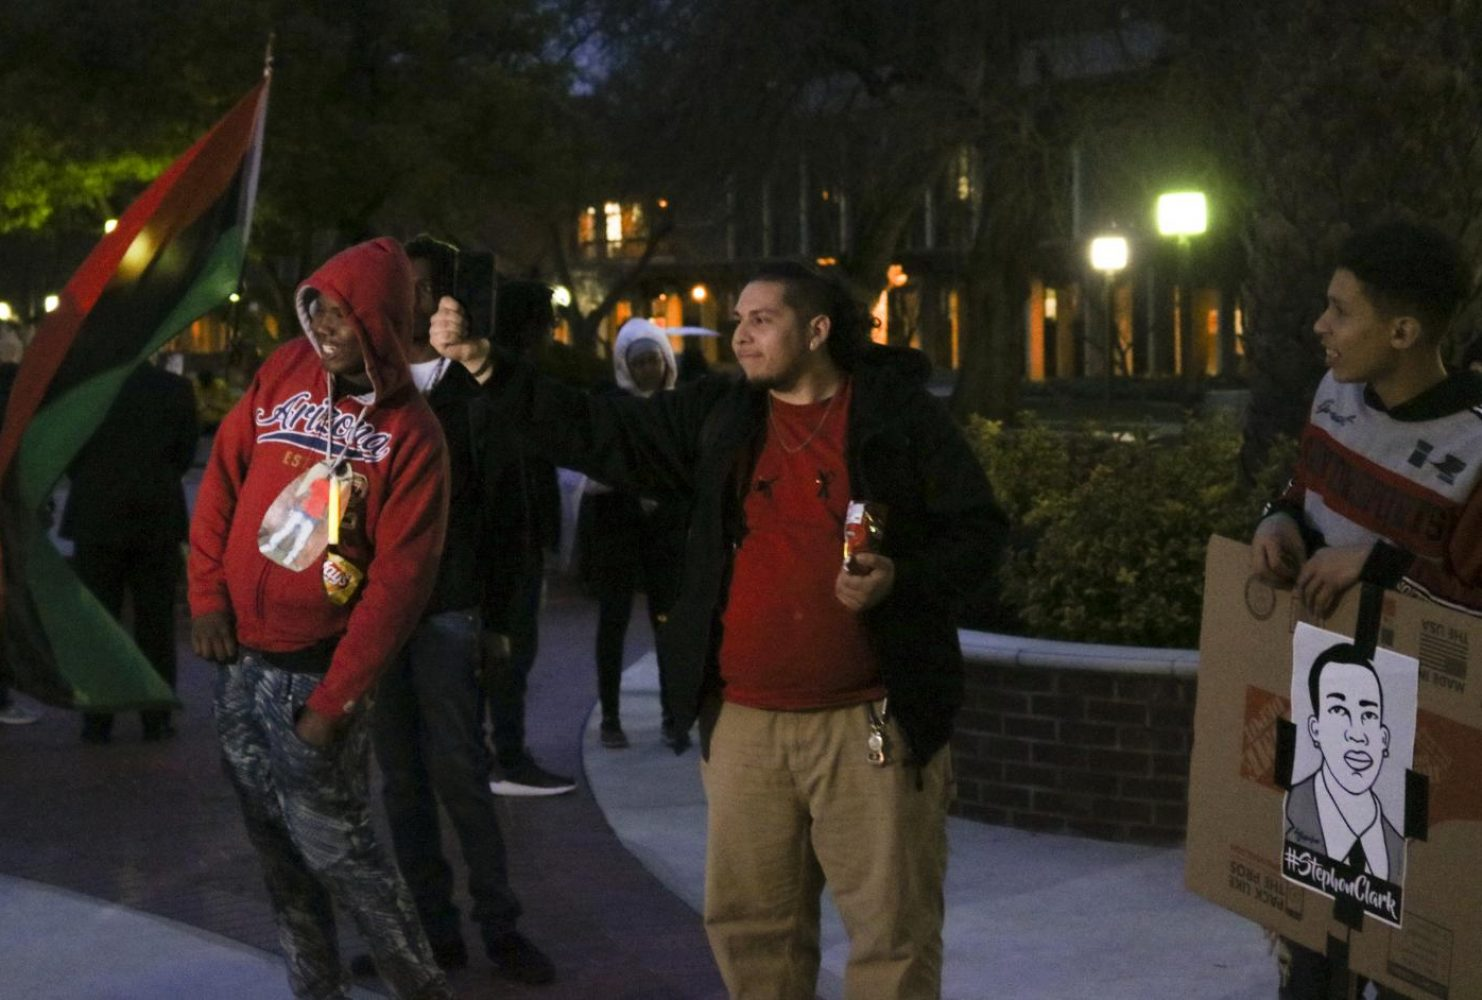 """Donovan Anvrave, a student at the vigil, holds up an iPhone, asking the crowd """"Is this a gun?"""" at Sacramento City College on March 7, 2019. His chant was a reference to the phone Clark held that police officers reportedly mistook for a gun. (Photo by Hannah Yates)"""